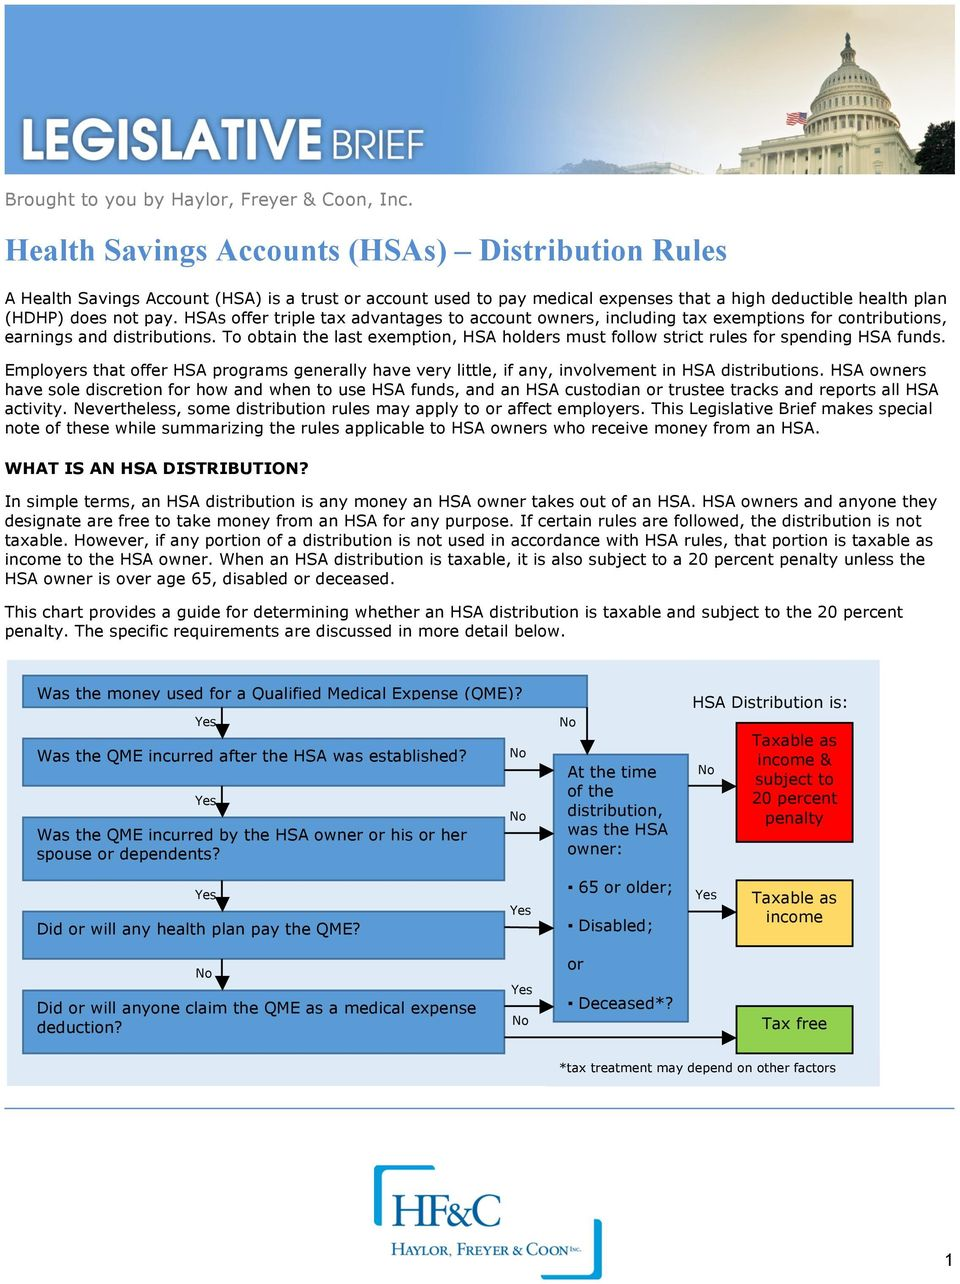 HSAs ffer triple tax advantages t accunt wners, including tax exemptins fr cntributins, earnings and distributins. T btain the last exemptin, HSA hlders must fllw strict rules fr spending HSA funds.